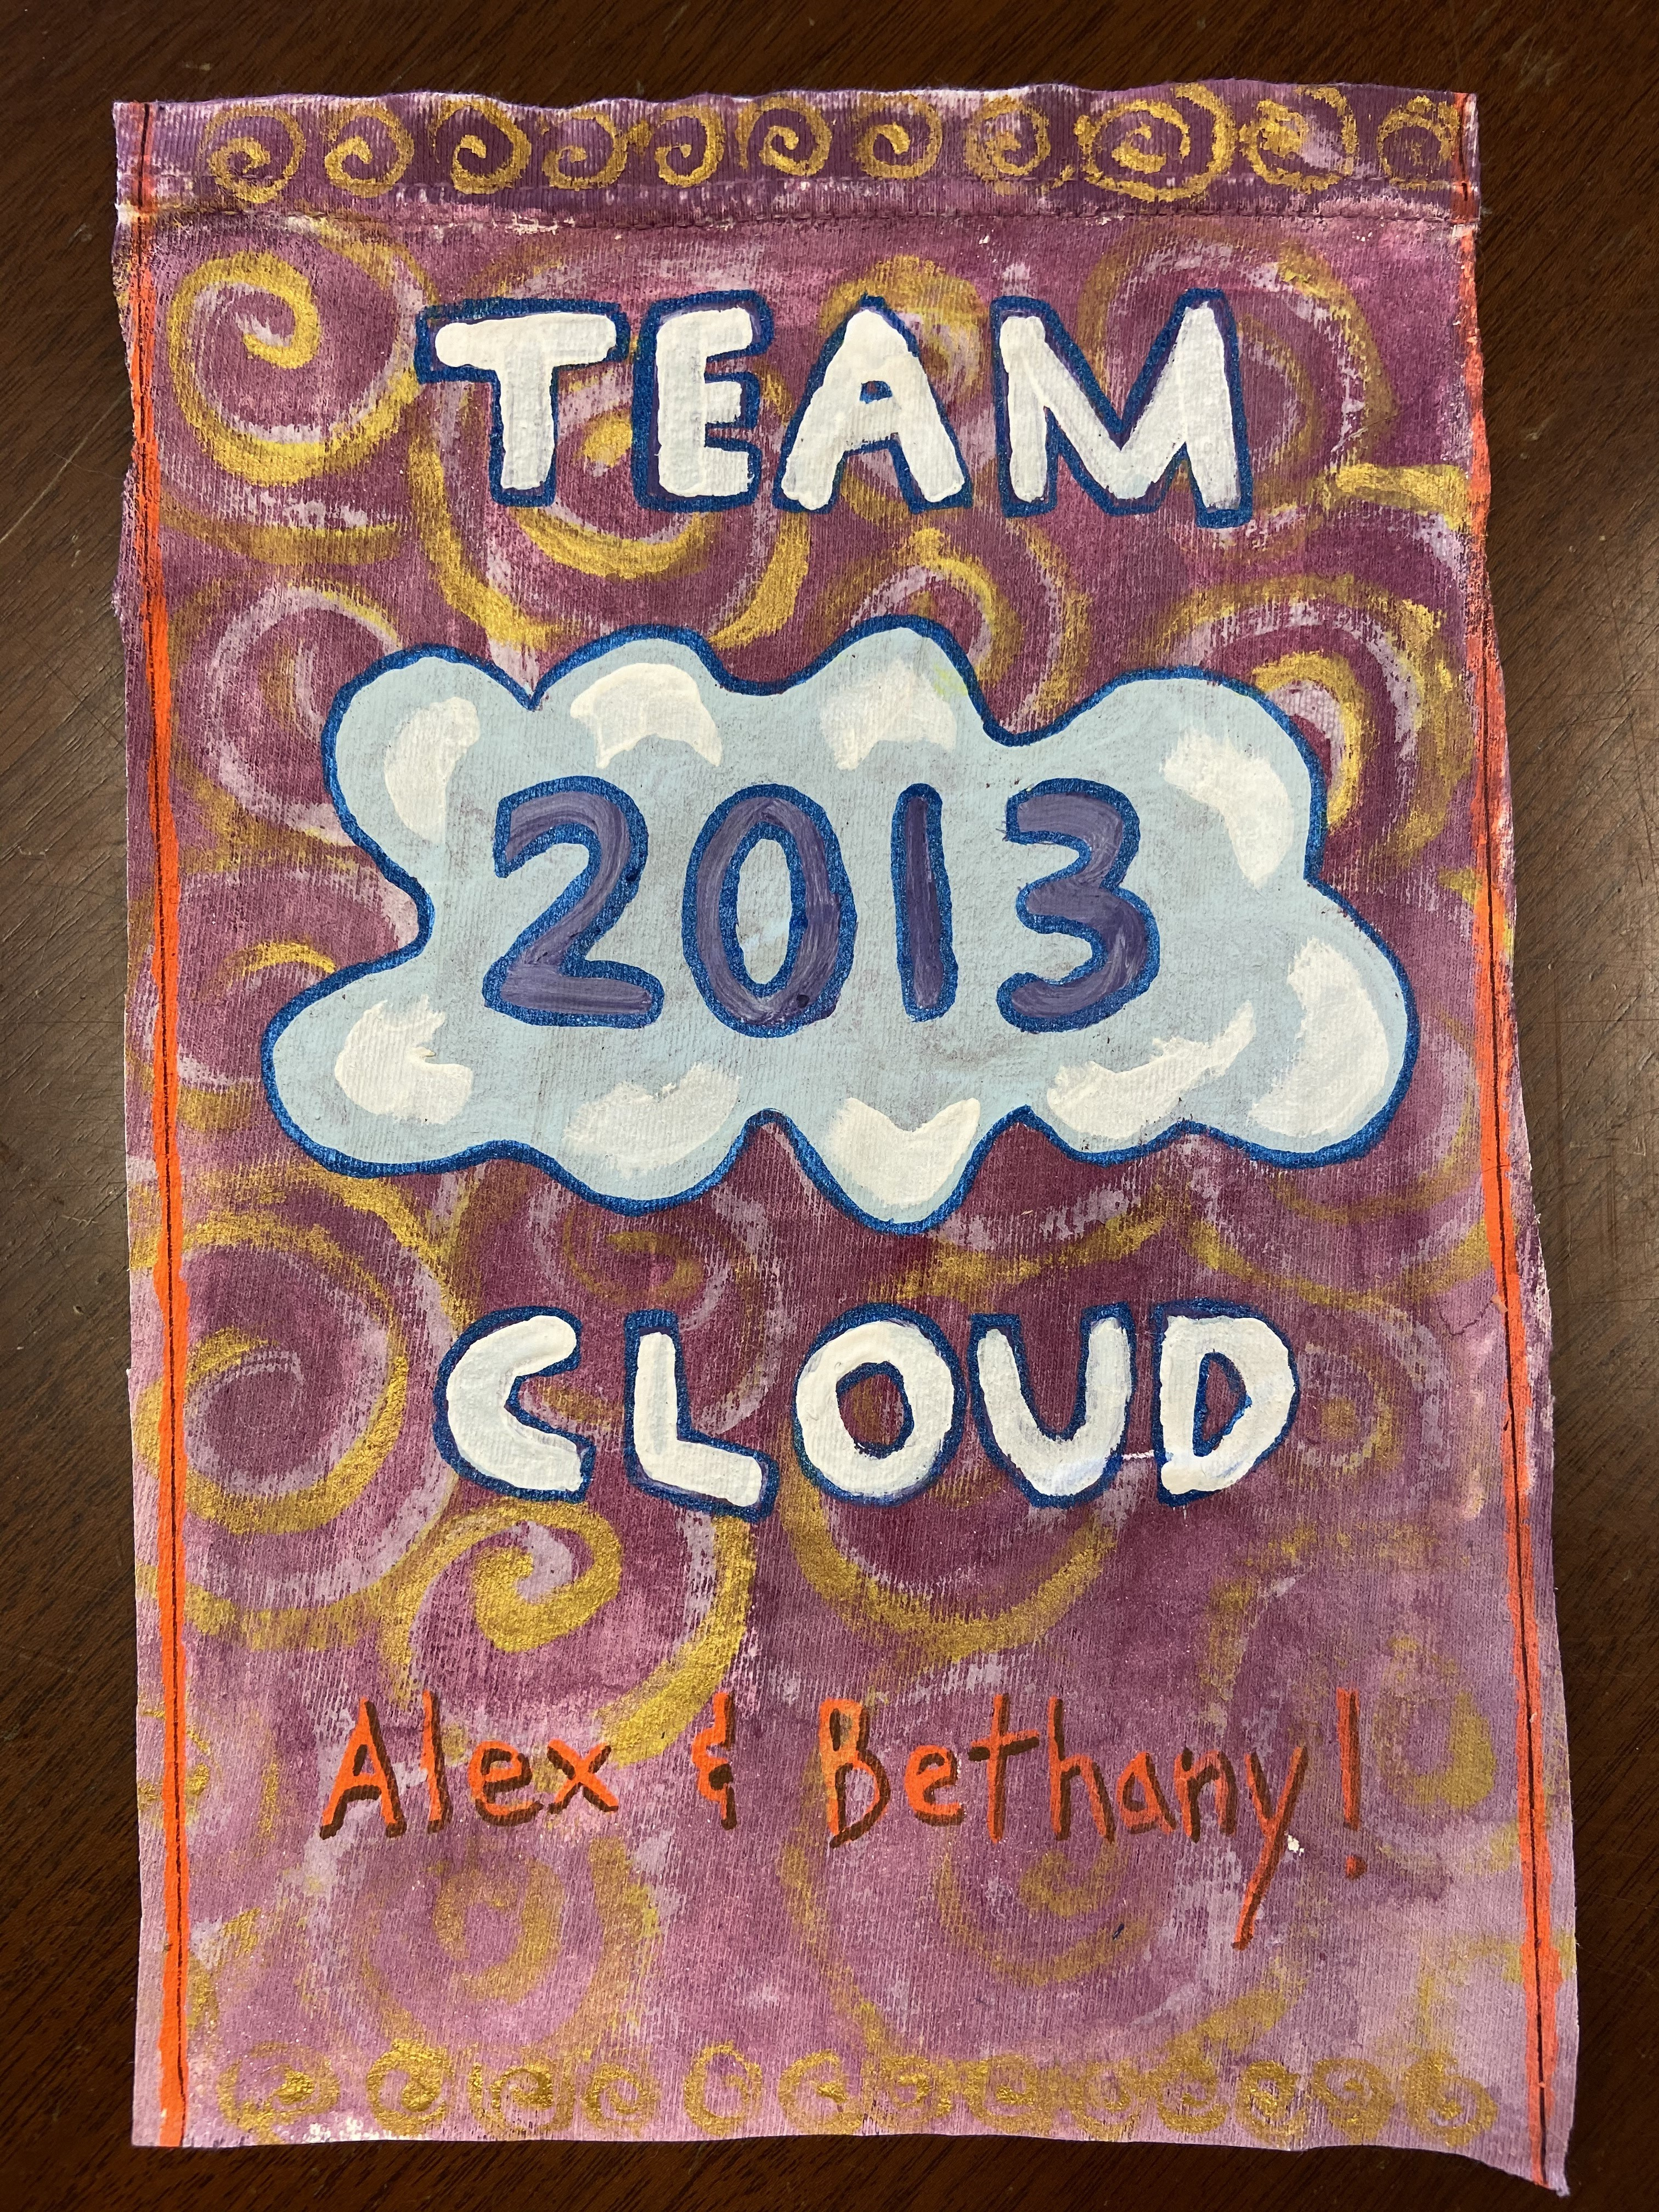 13_Team Cloud